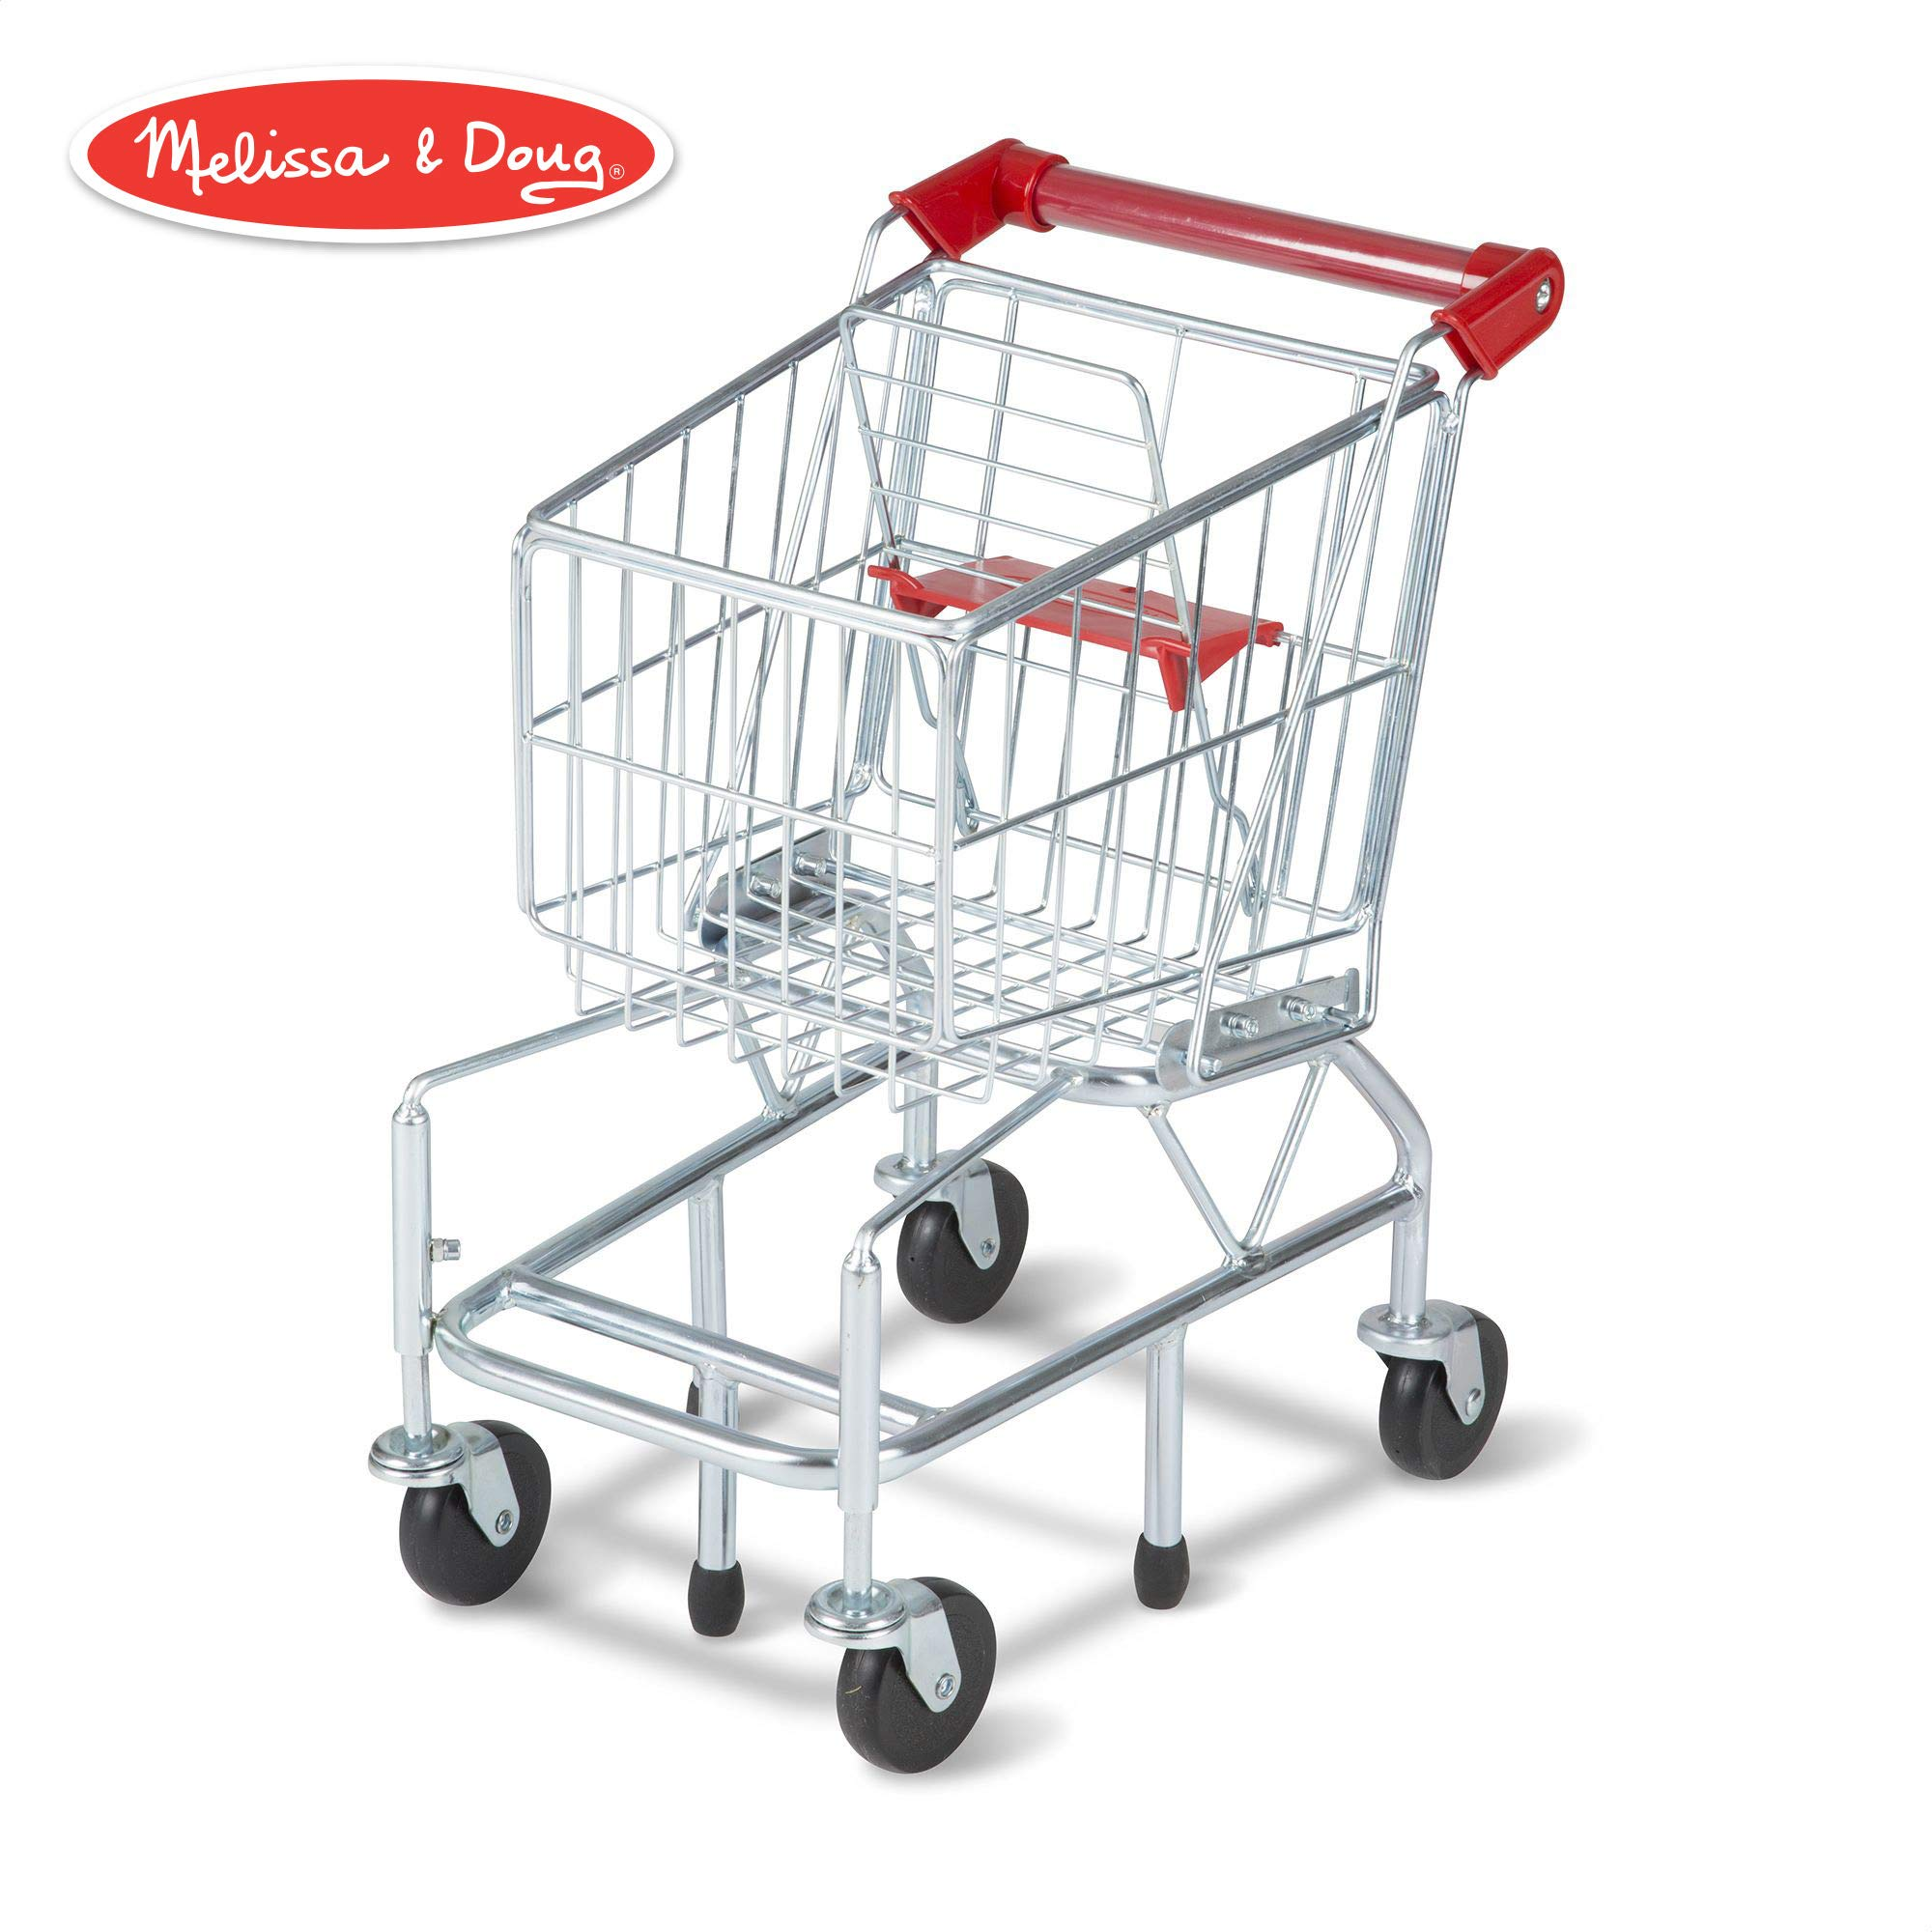 Melissa & Doug Toy Shopping Cart with Sturdy Metal Frame, Play Sets & Kitchens, Heavy-Gauge Steel Construction, 23.25'' H x 11.75'' W x 15'' L by Melissa & Doug